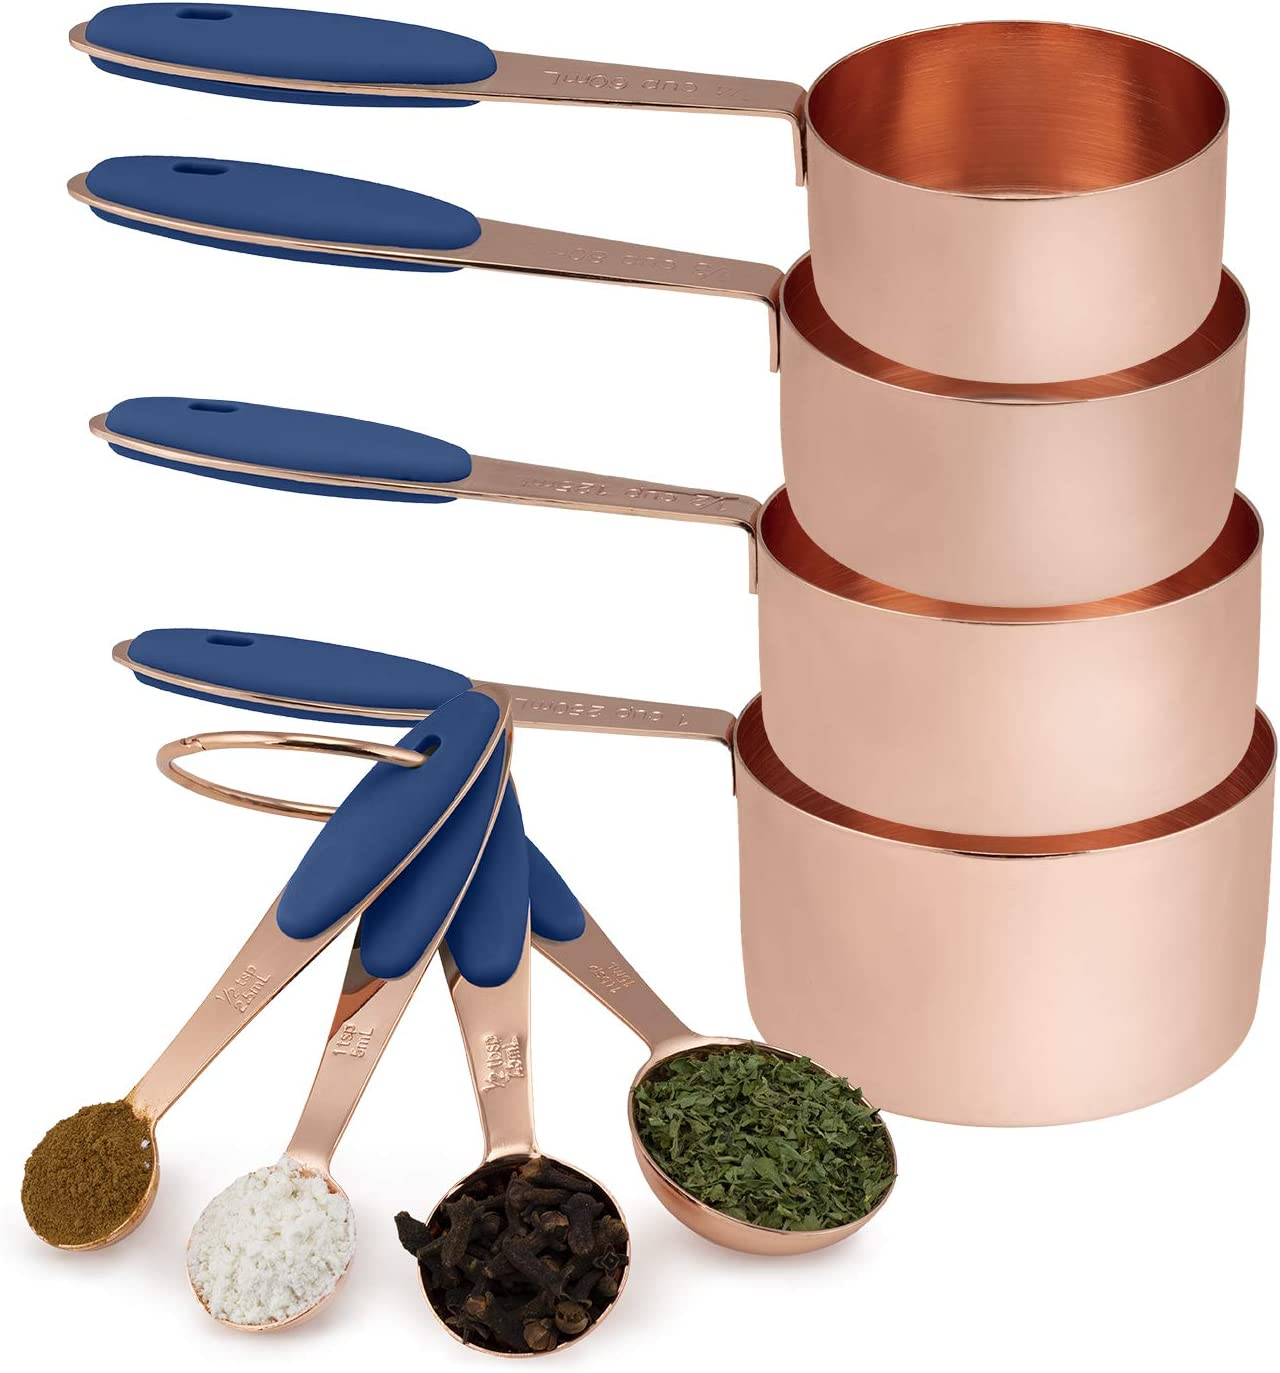 Cook with Color 8 Piece Copper Measuring Cups and Measuring Spoon Set Stainless Steel with Soft Touch Silicone Handles, Nesting Liquid Measuring Cup Set or Dry Measuring Cups Set (Navy)